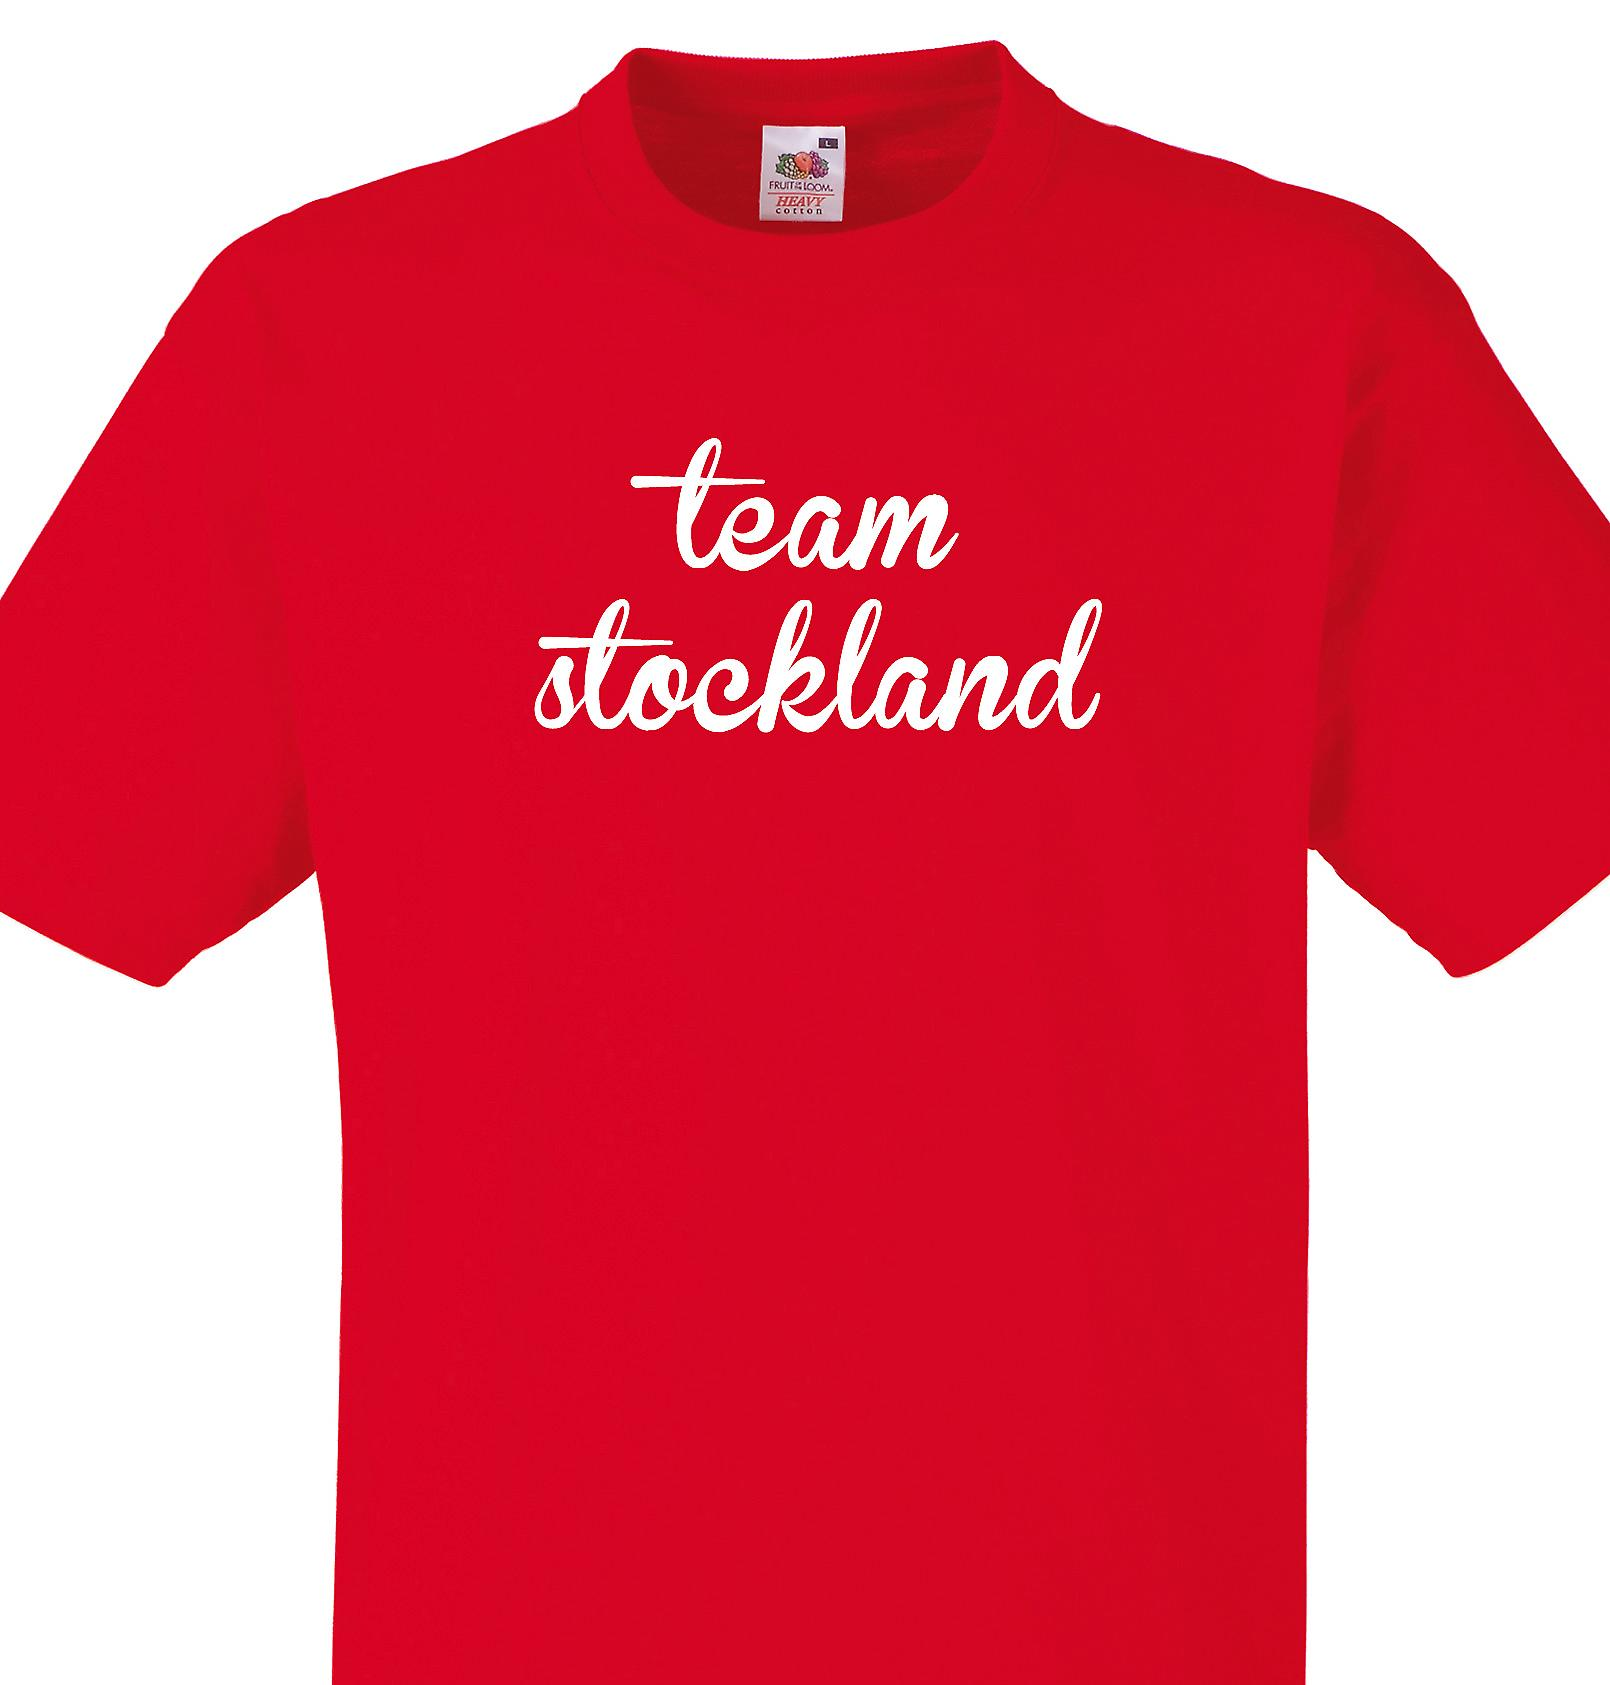 Team Stockland Red T shirt